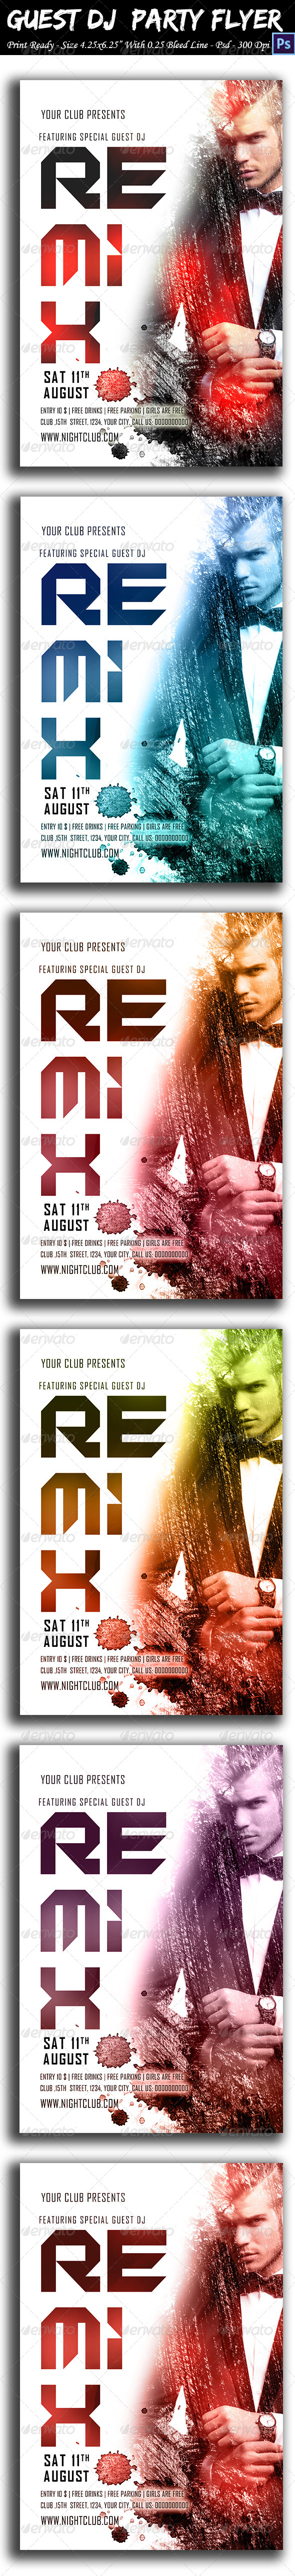 GraphicRiver Guest DJ Party Flyer Vol 2 8574707